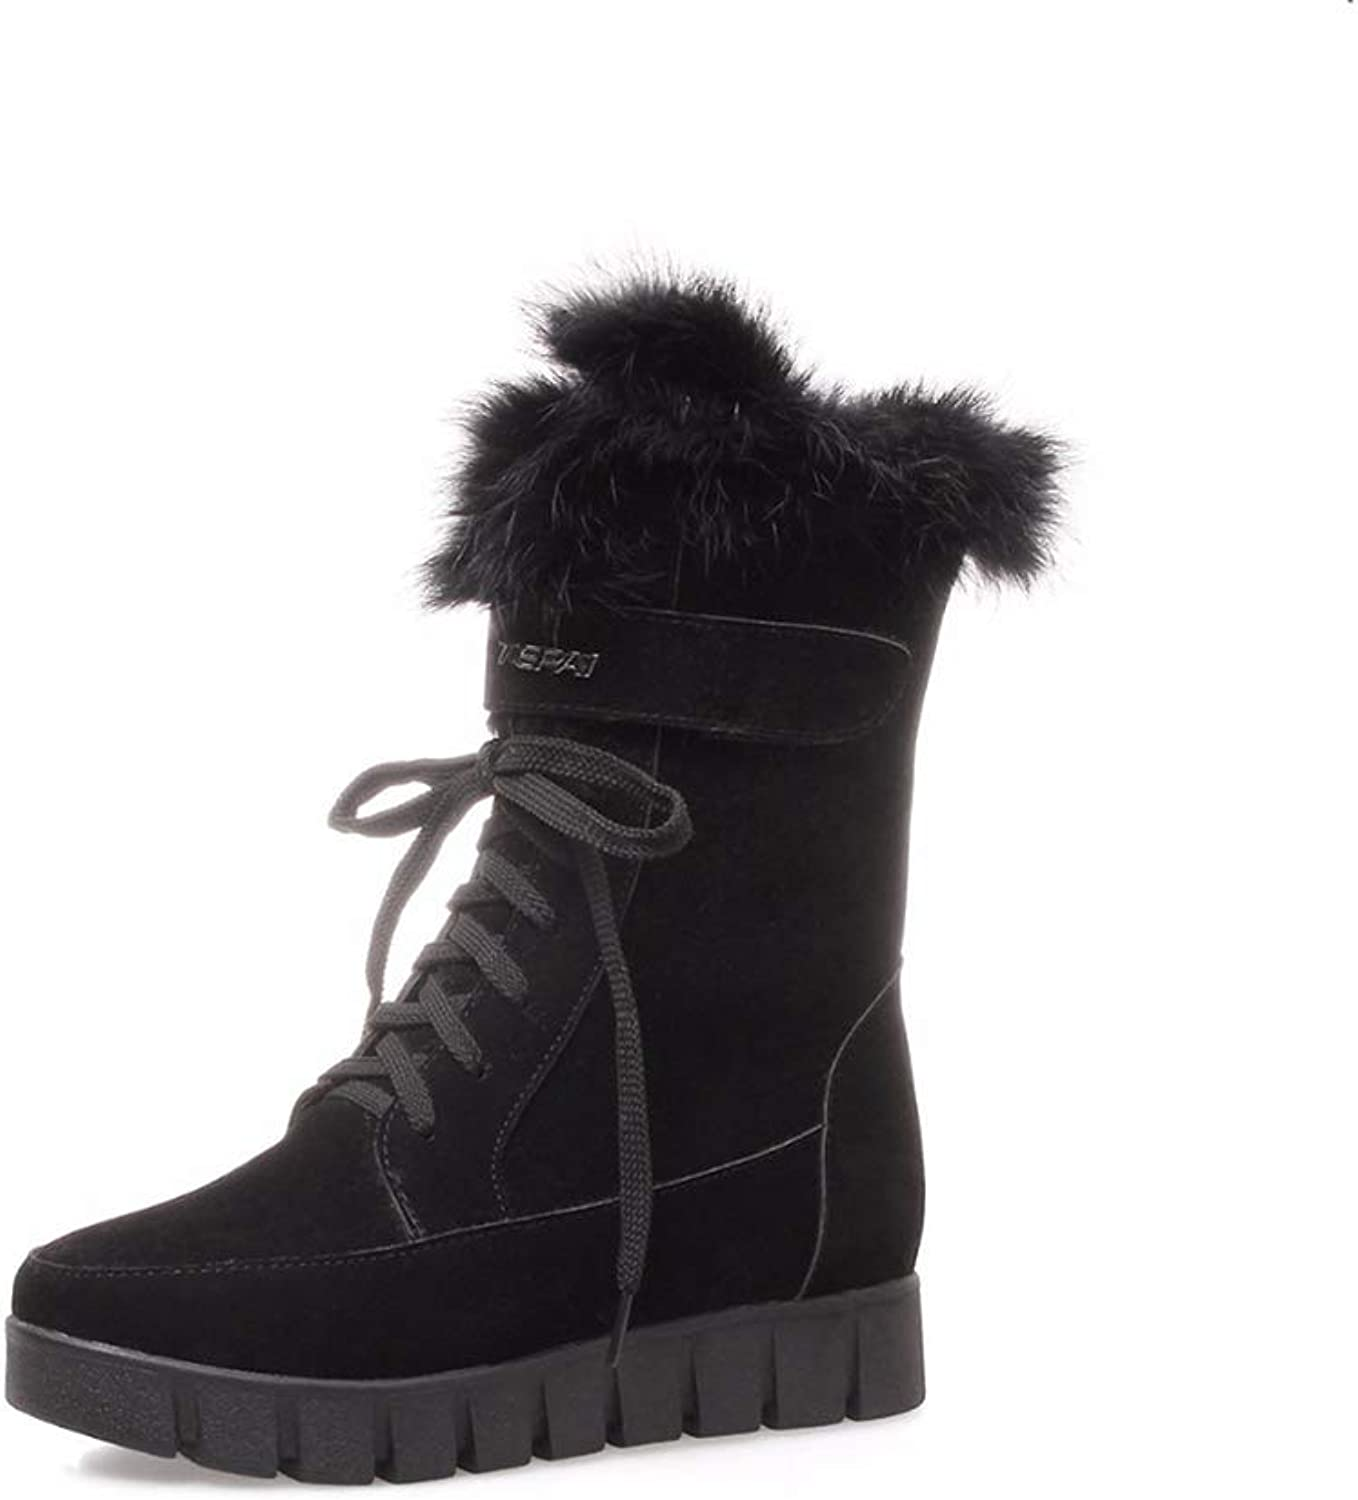 Women's Wedges Snow Boots Lace Up Platform Warm Casual shoes Woman Long Plush Fashion Winter Boot